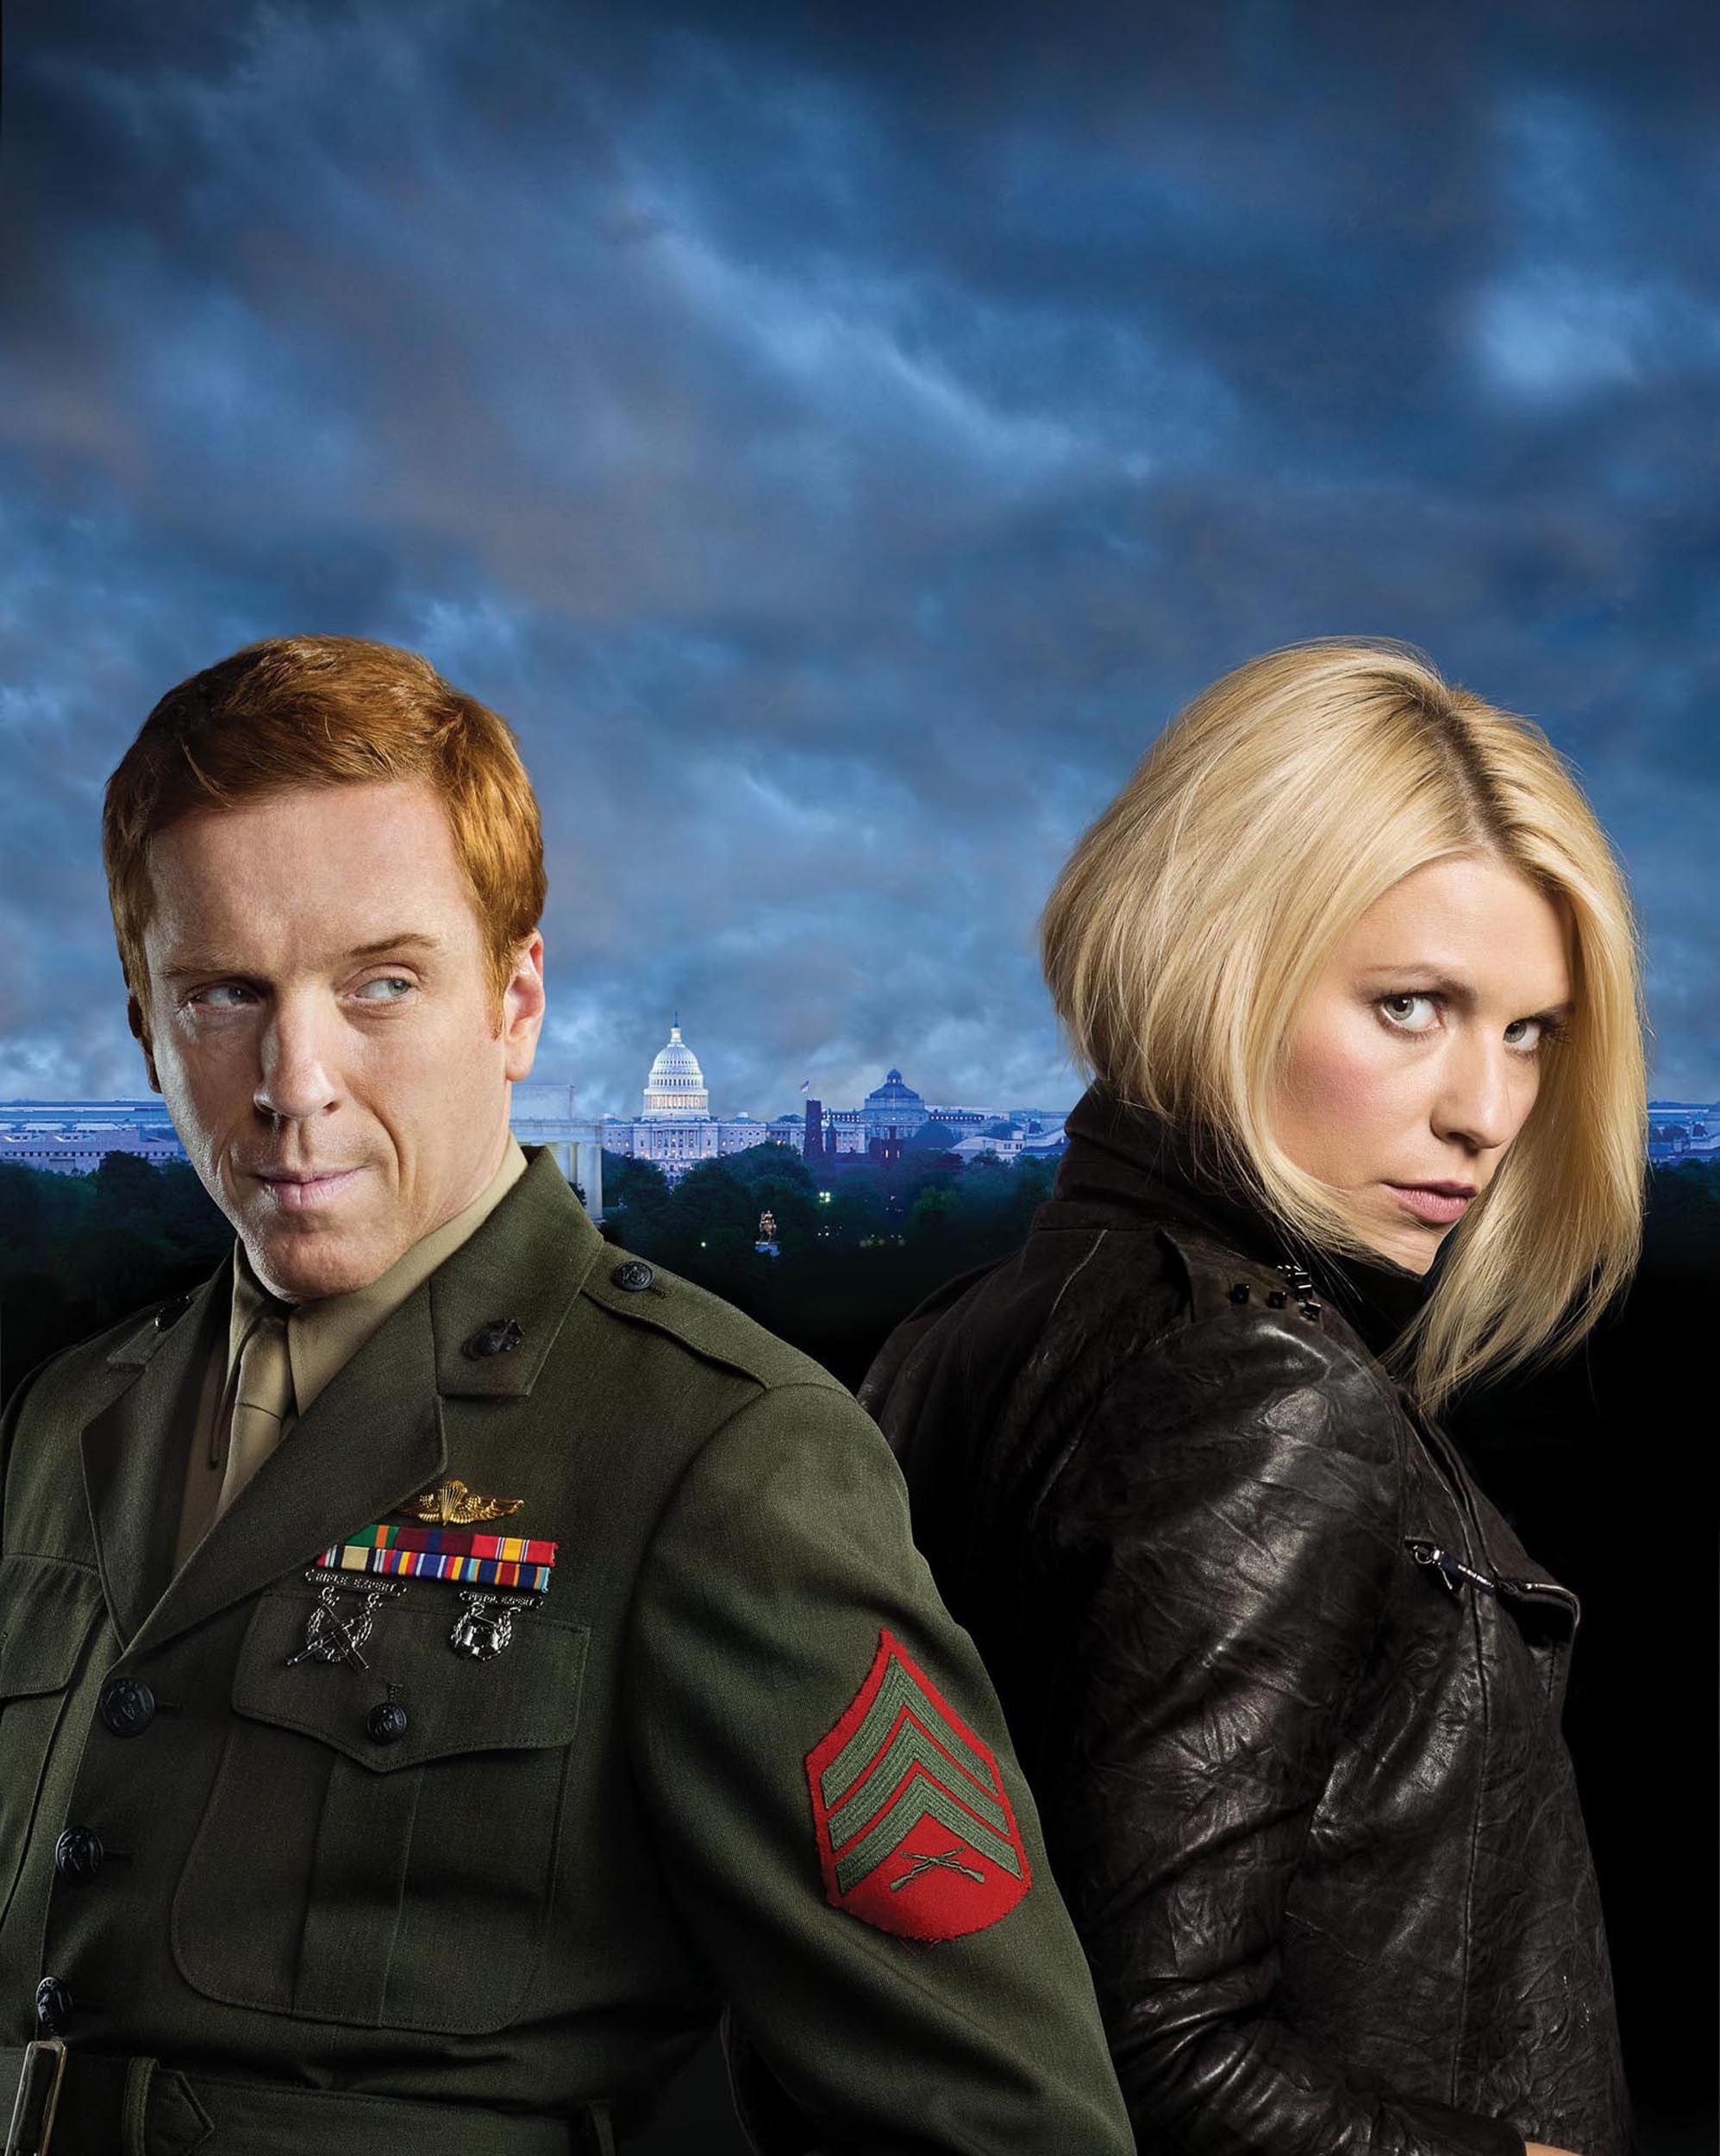 Channel 4 launches free 4oD downloads